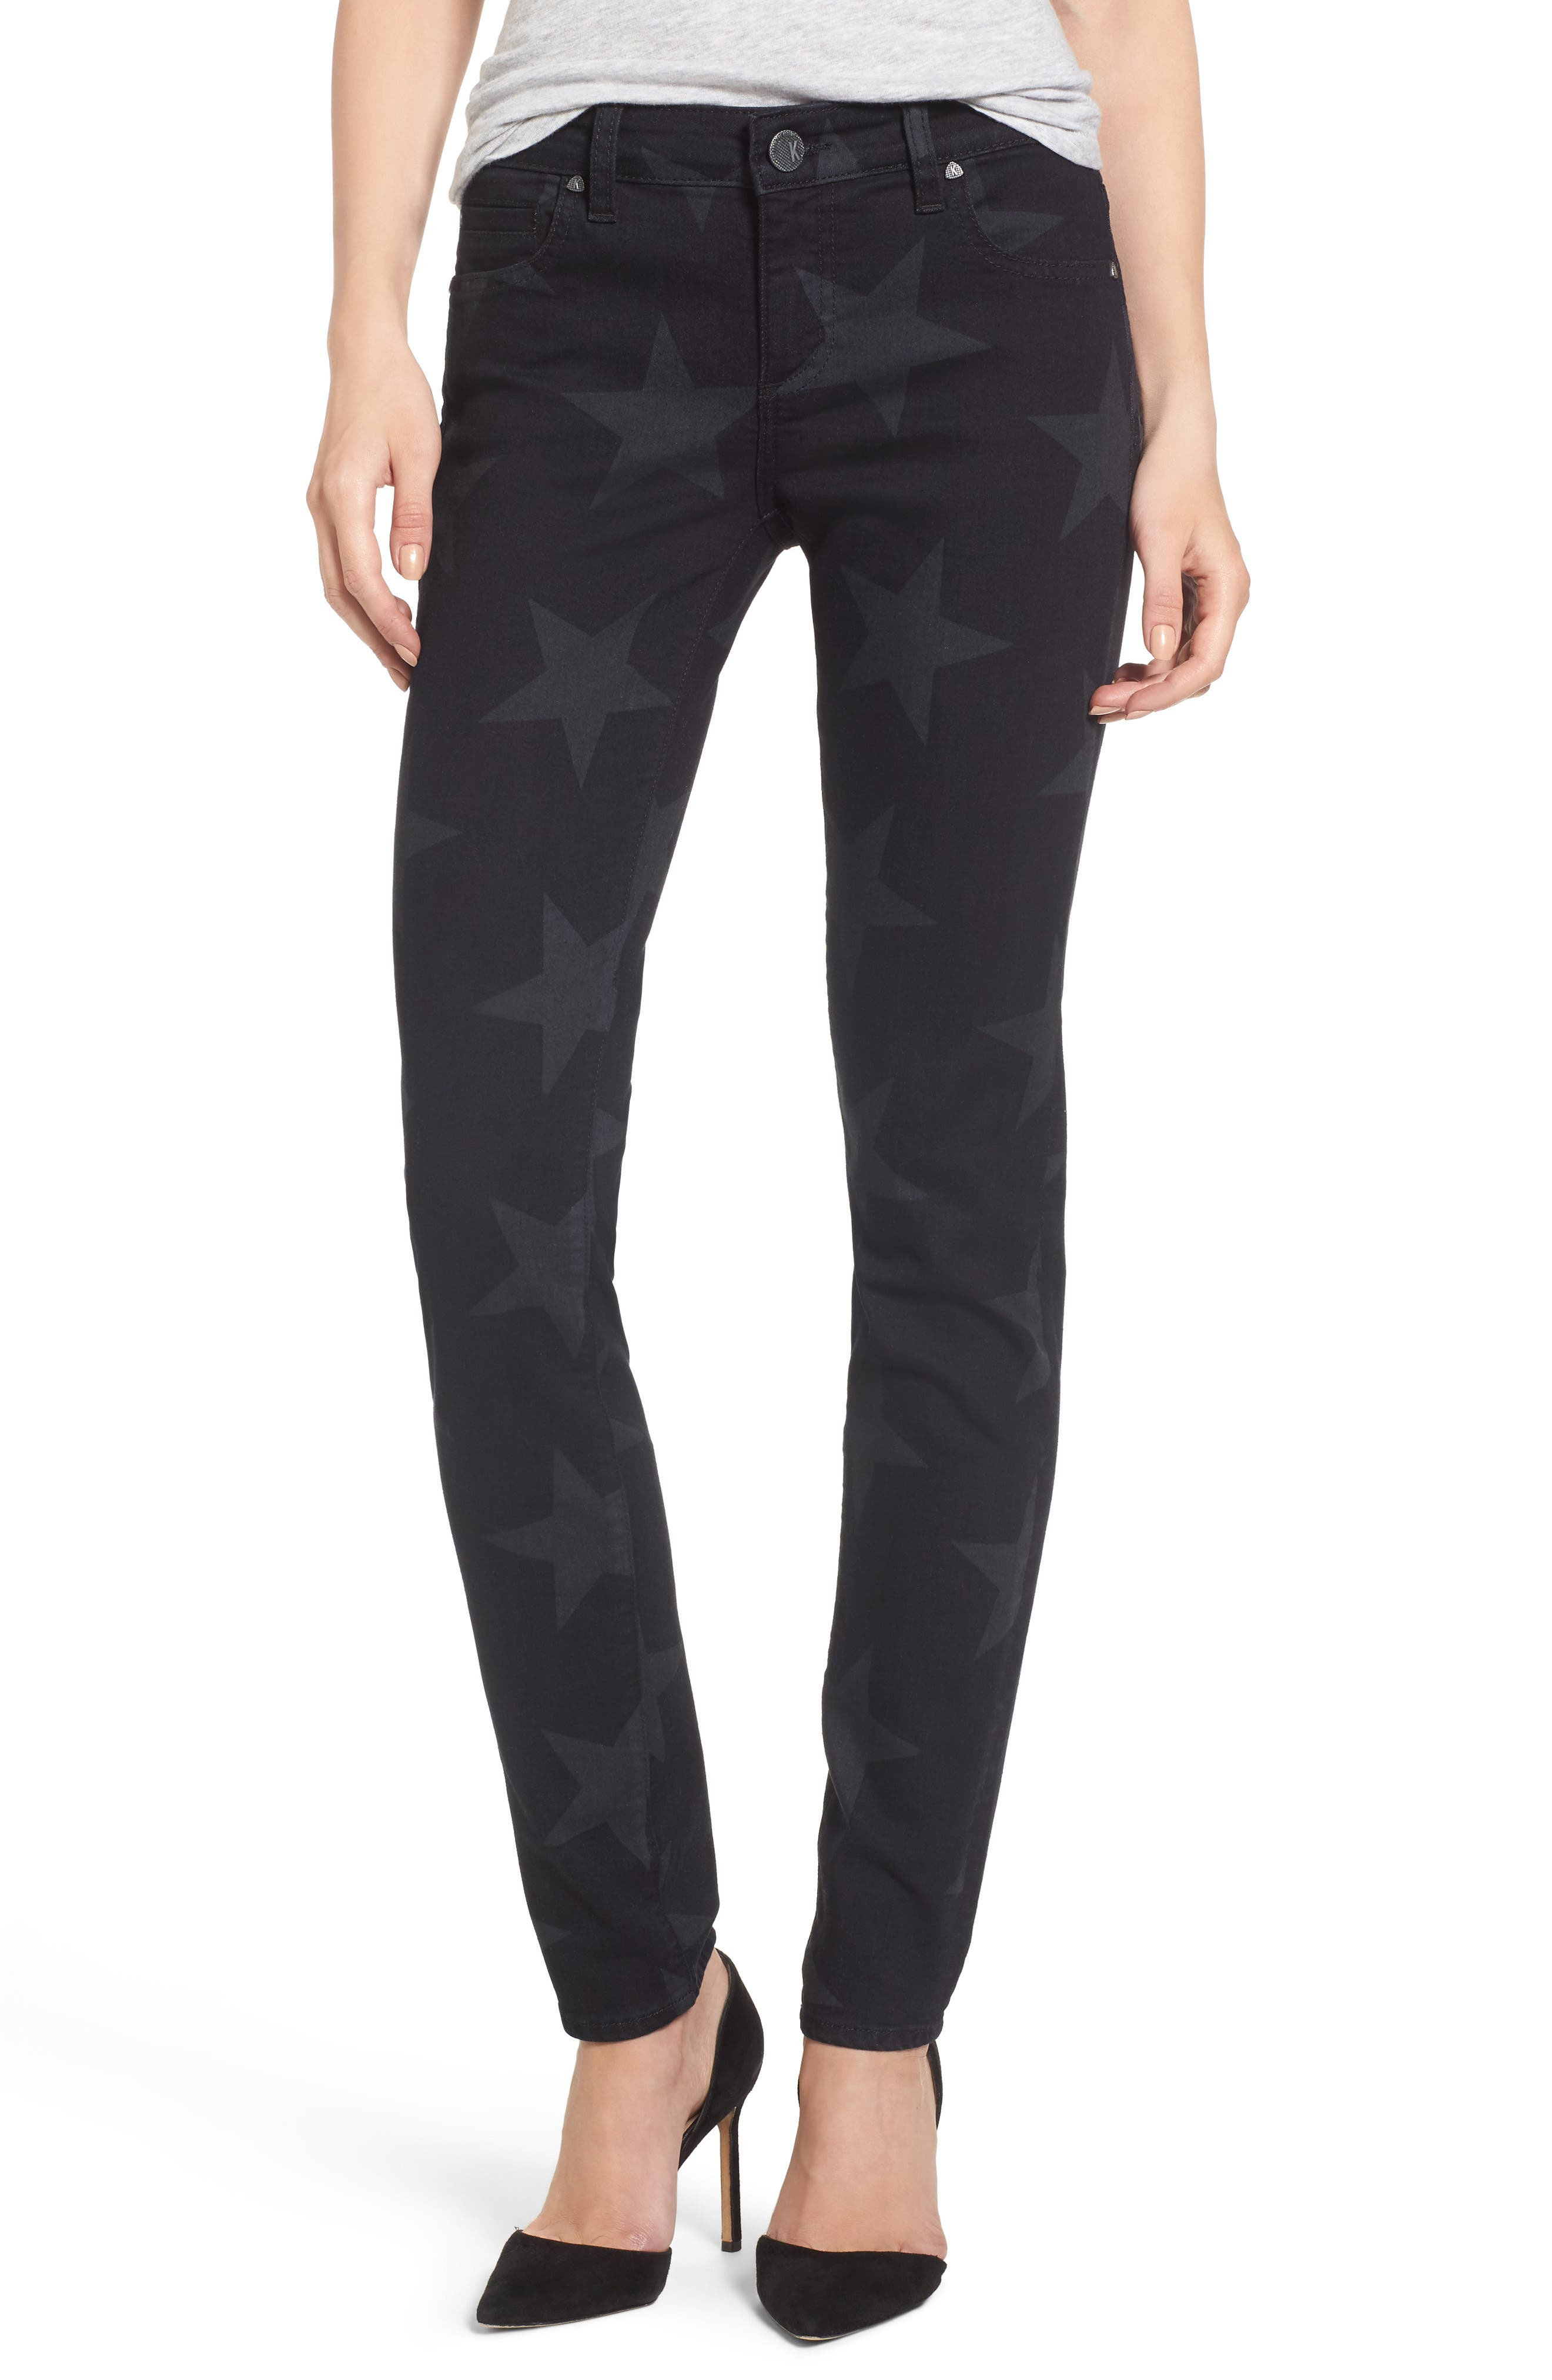 Alternate Image 1 Selected - KUT from the Kloth Mia Star Print Skinny Jeans (Trailblazing)